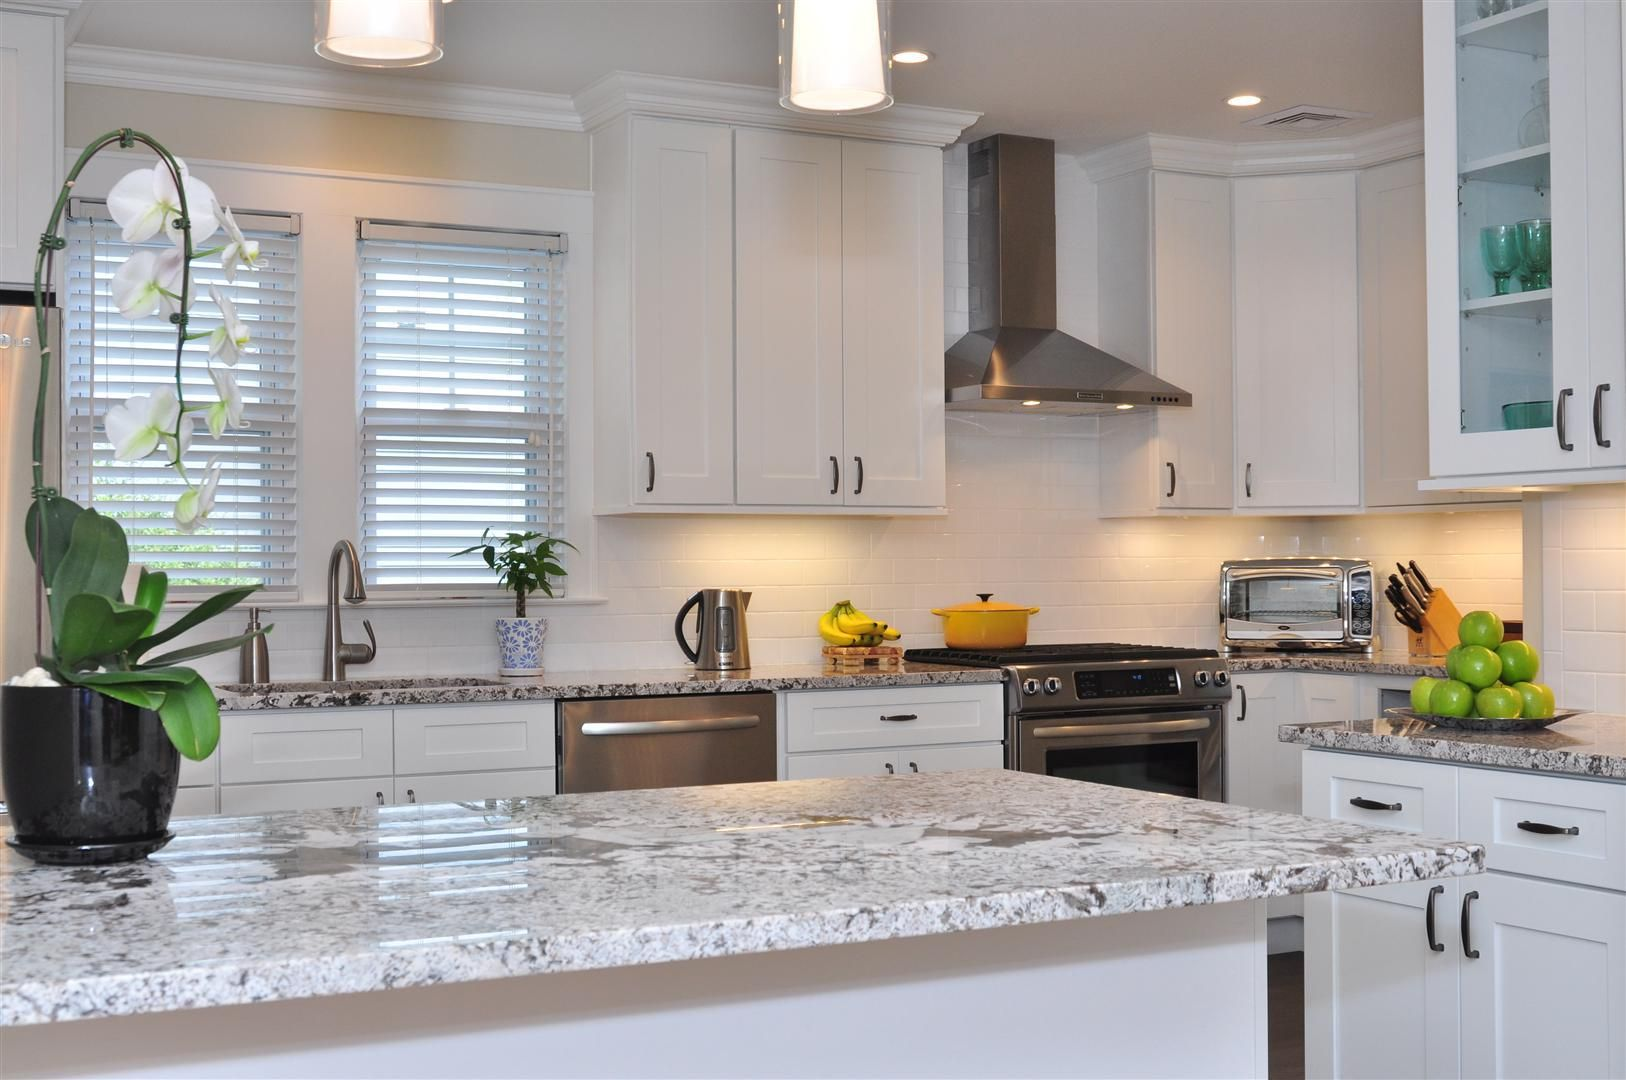 Ice White Shaker Cabinets By Kitchen Cabinet Kings White Shaker Kitchen White Shaker Kitchen Cabinets Kitchen Cabinet Styles